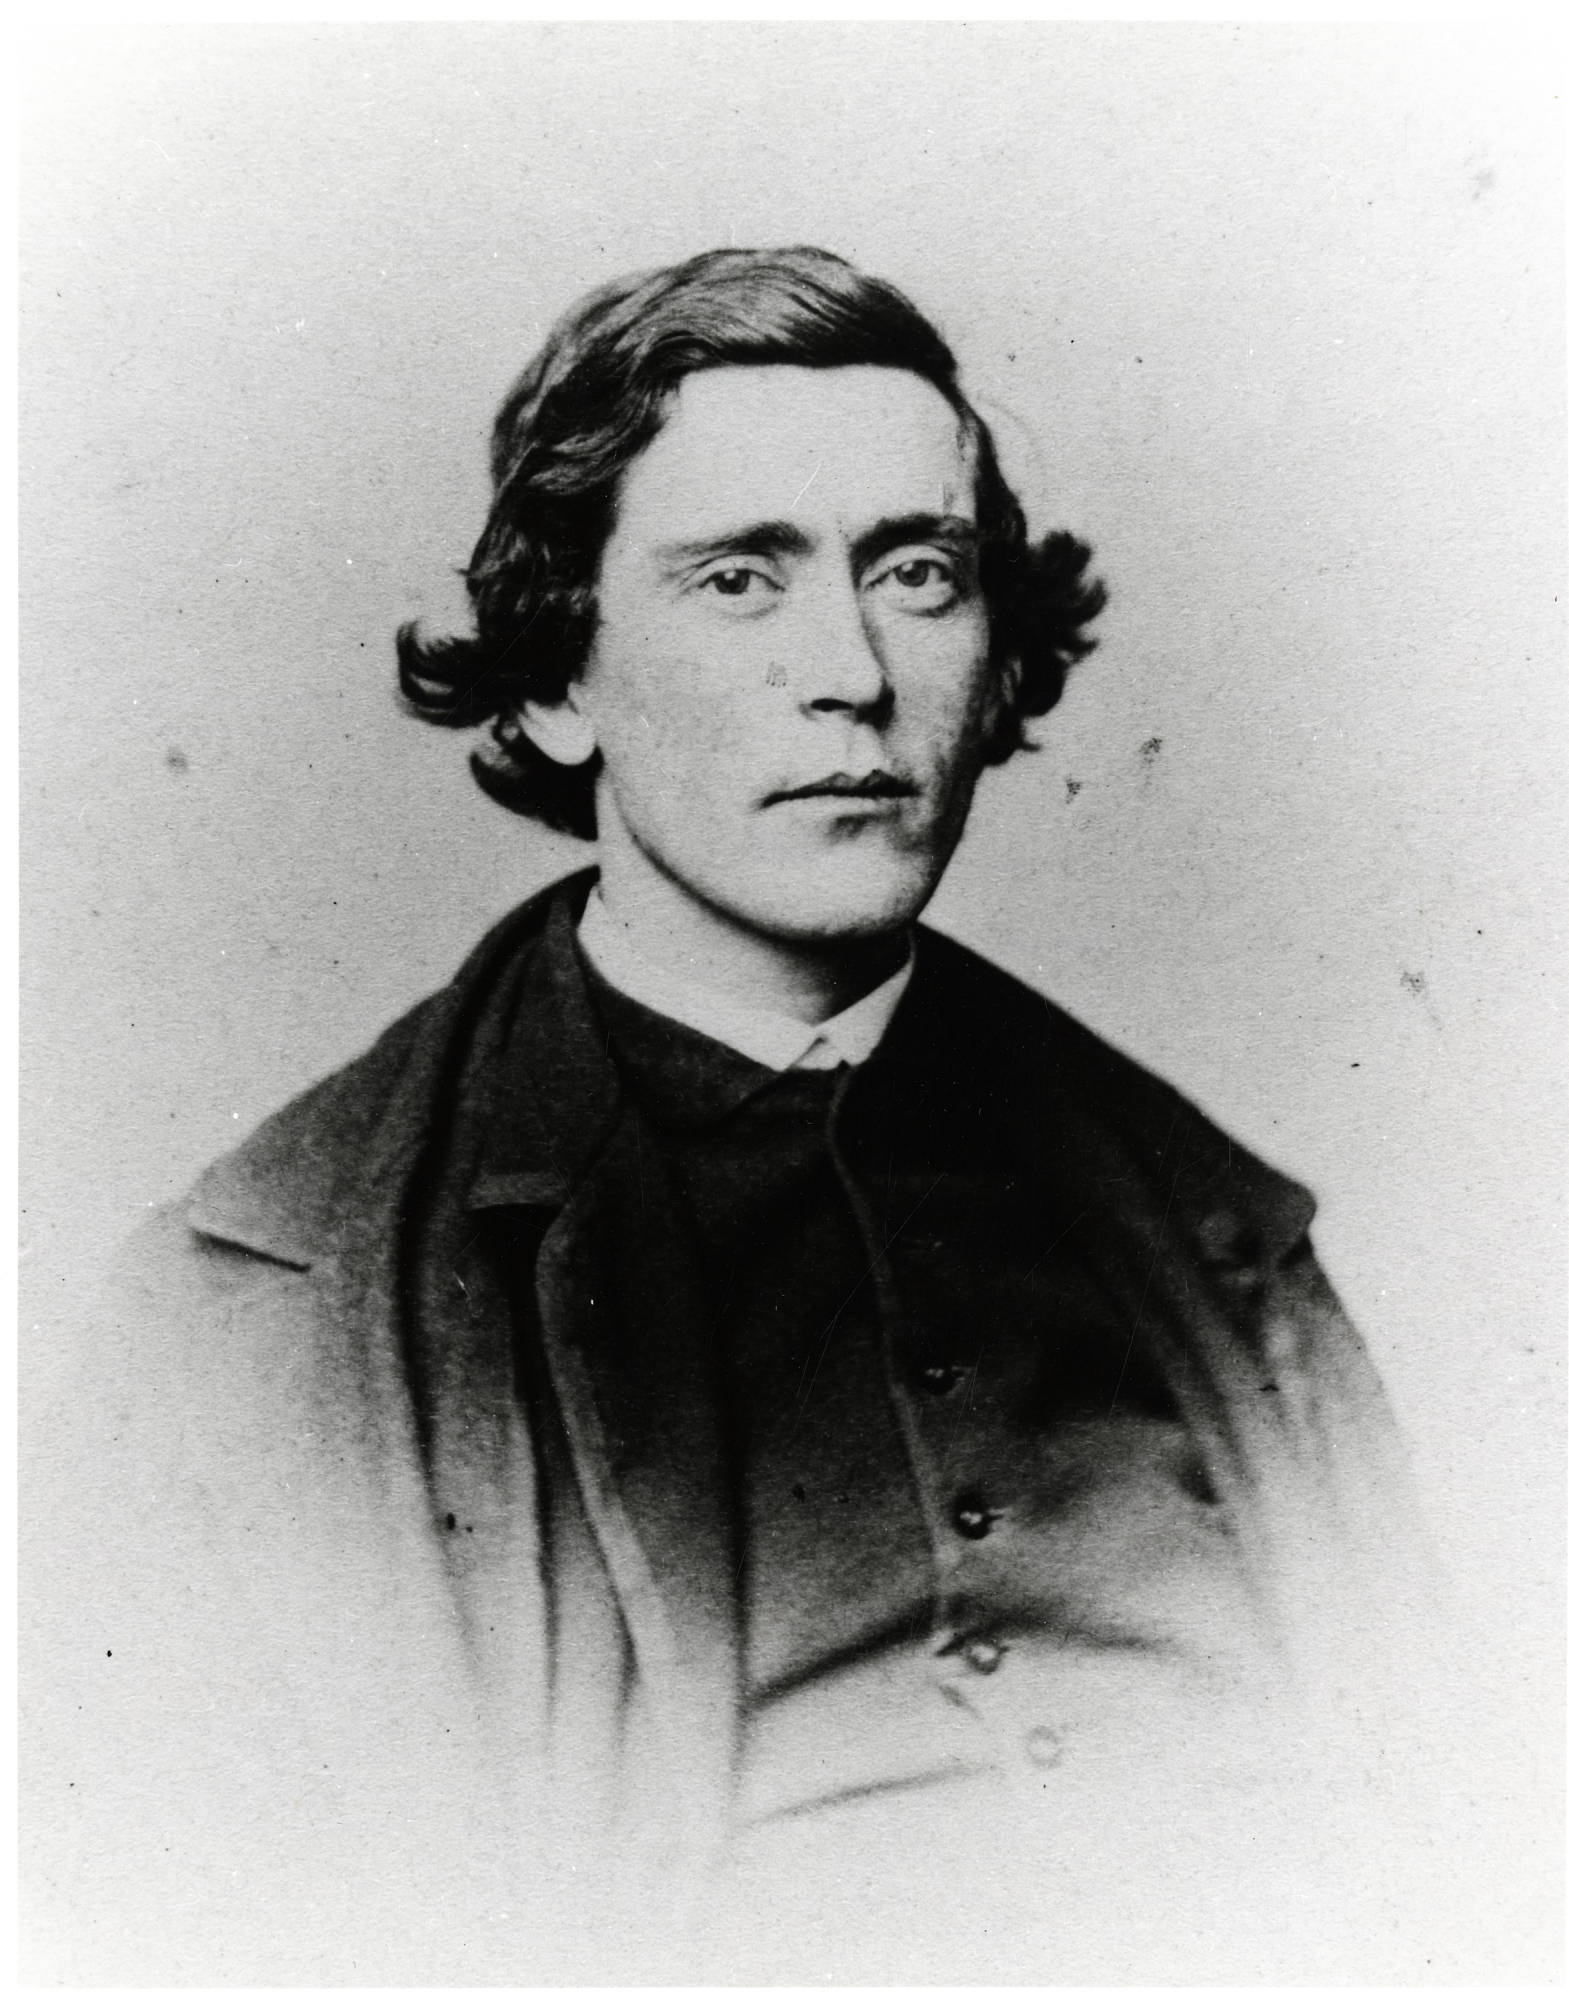 Black and white portrait of a man.